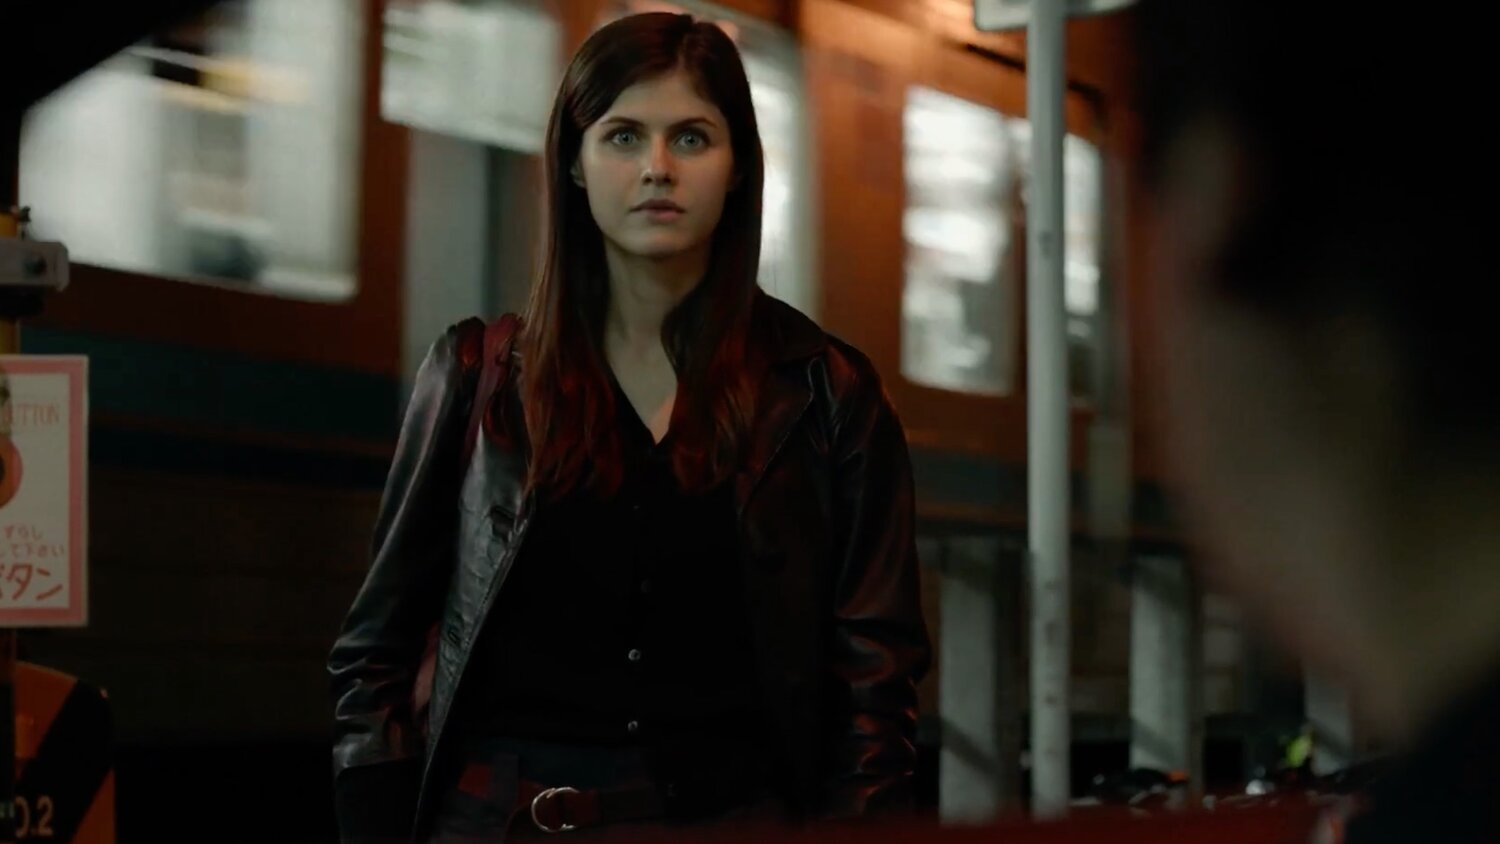 Alexandra Daddario Gets Lost in Darkest Corridors of Japan in Trailer For LOST GIRLS & LOVE HOTEL